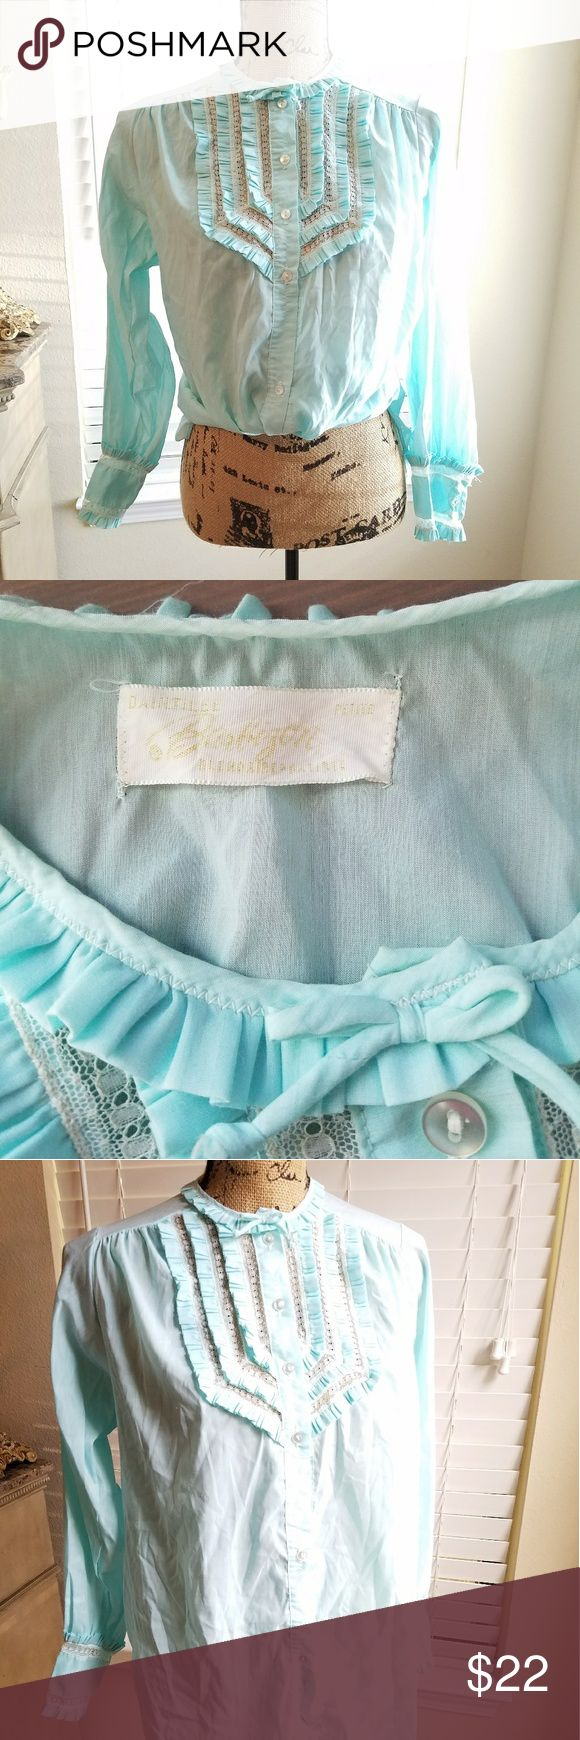 🍍VTG ice blue ruffled long sleeved prairie blouse Vintage ice blue long sleeved button up blouse with white lace ruffled detail with bow on collar. I think this was originally a pj top but I have worn it tucked into hugh waisted trousers to work and it is so cute! It is in excellent vintage condition! Tops Button Down Shirts